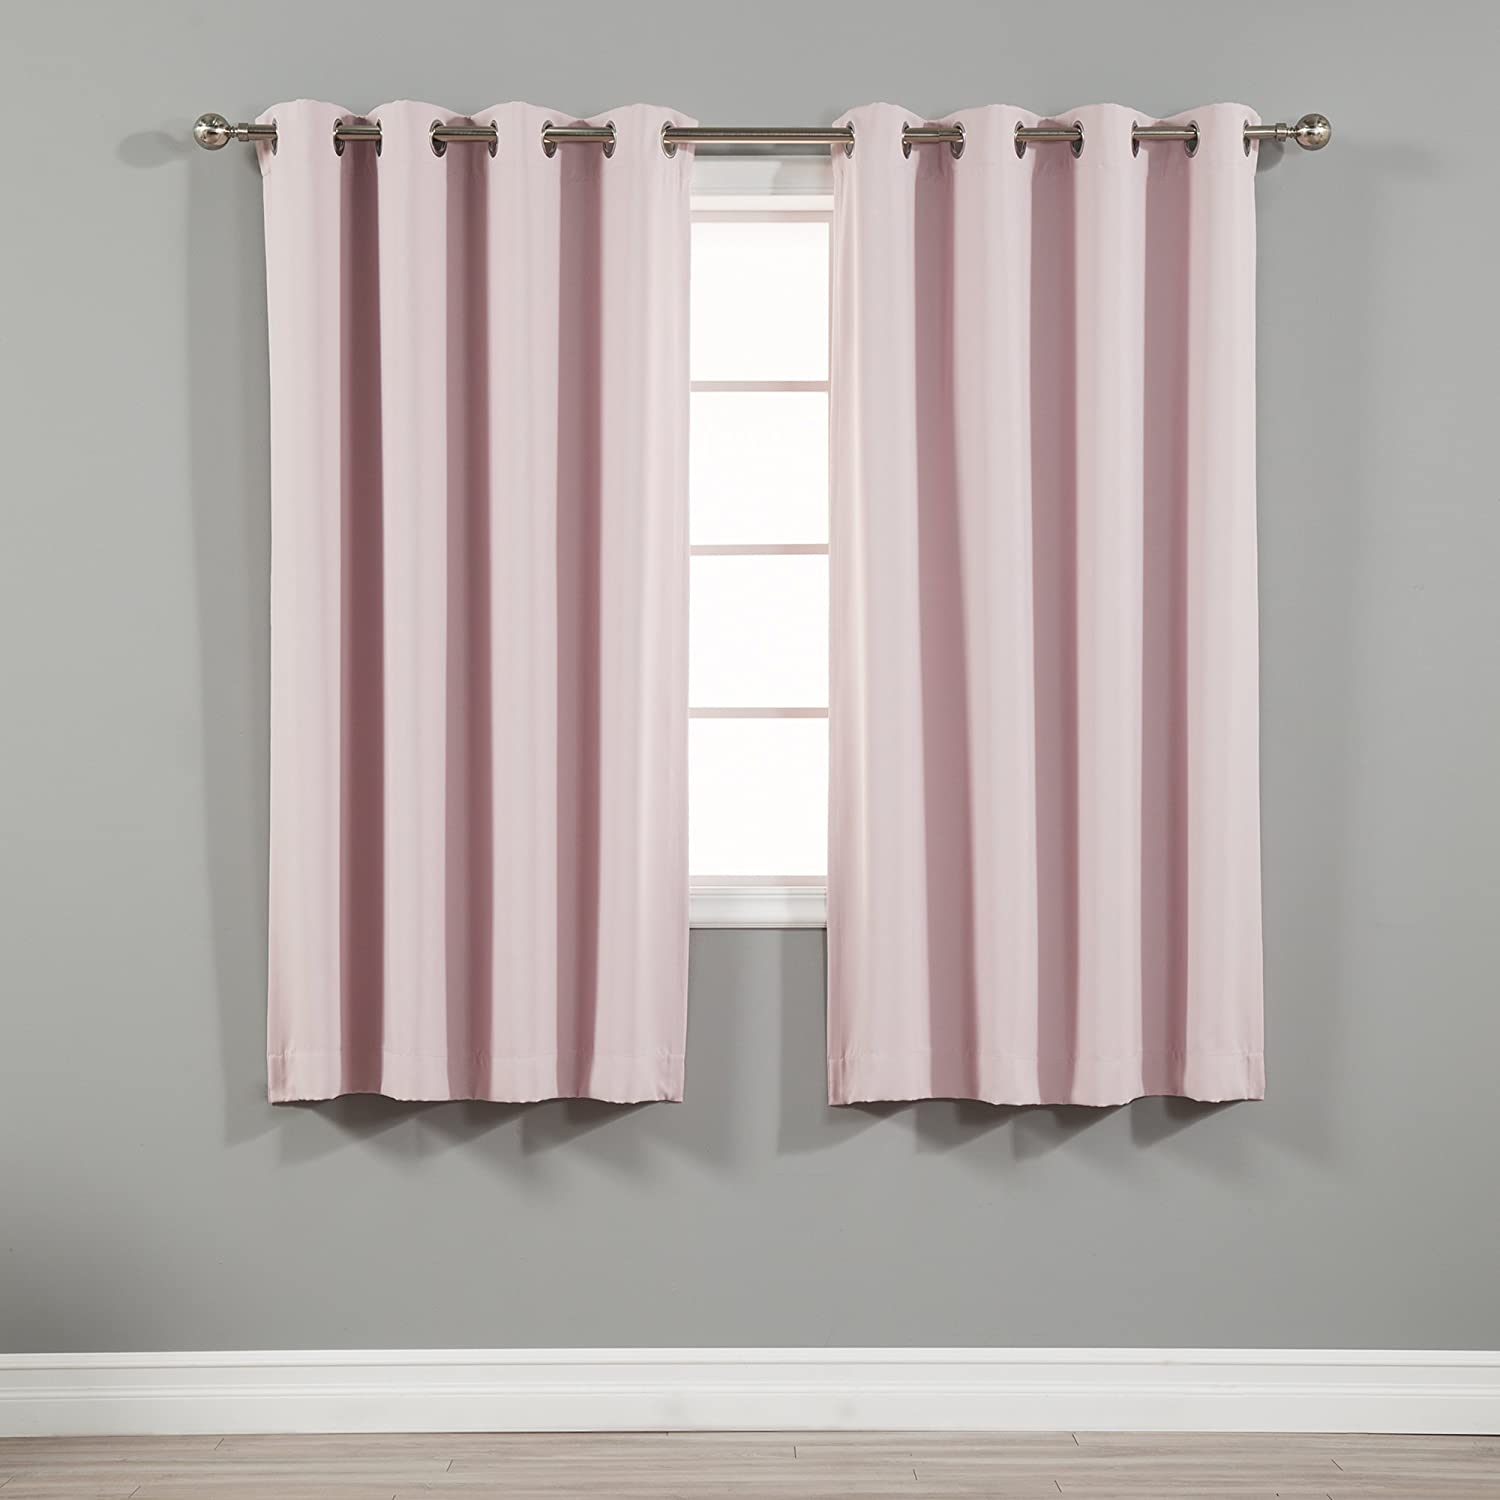 Best Home Fashion Thermal Insulated Blackout Curtains - Stainless Steel Nickel Grommet Top - Light Pink - 52